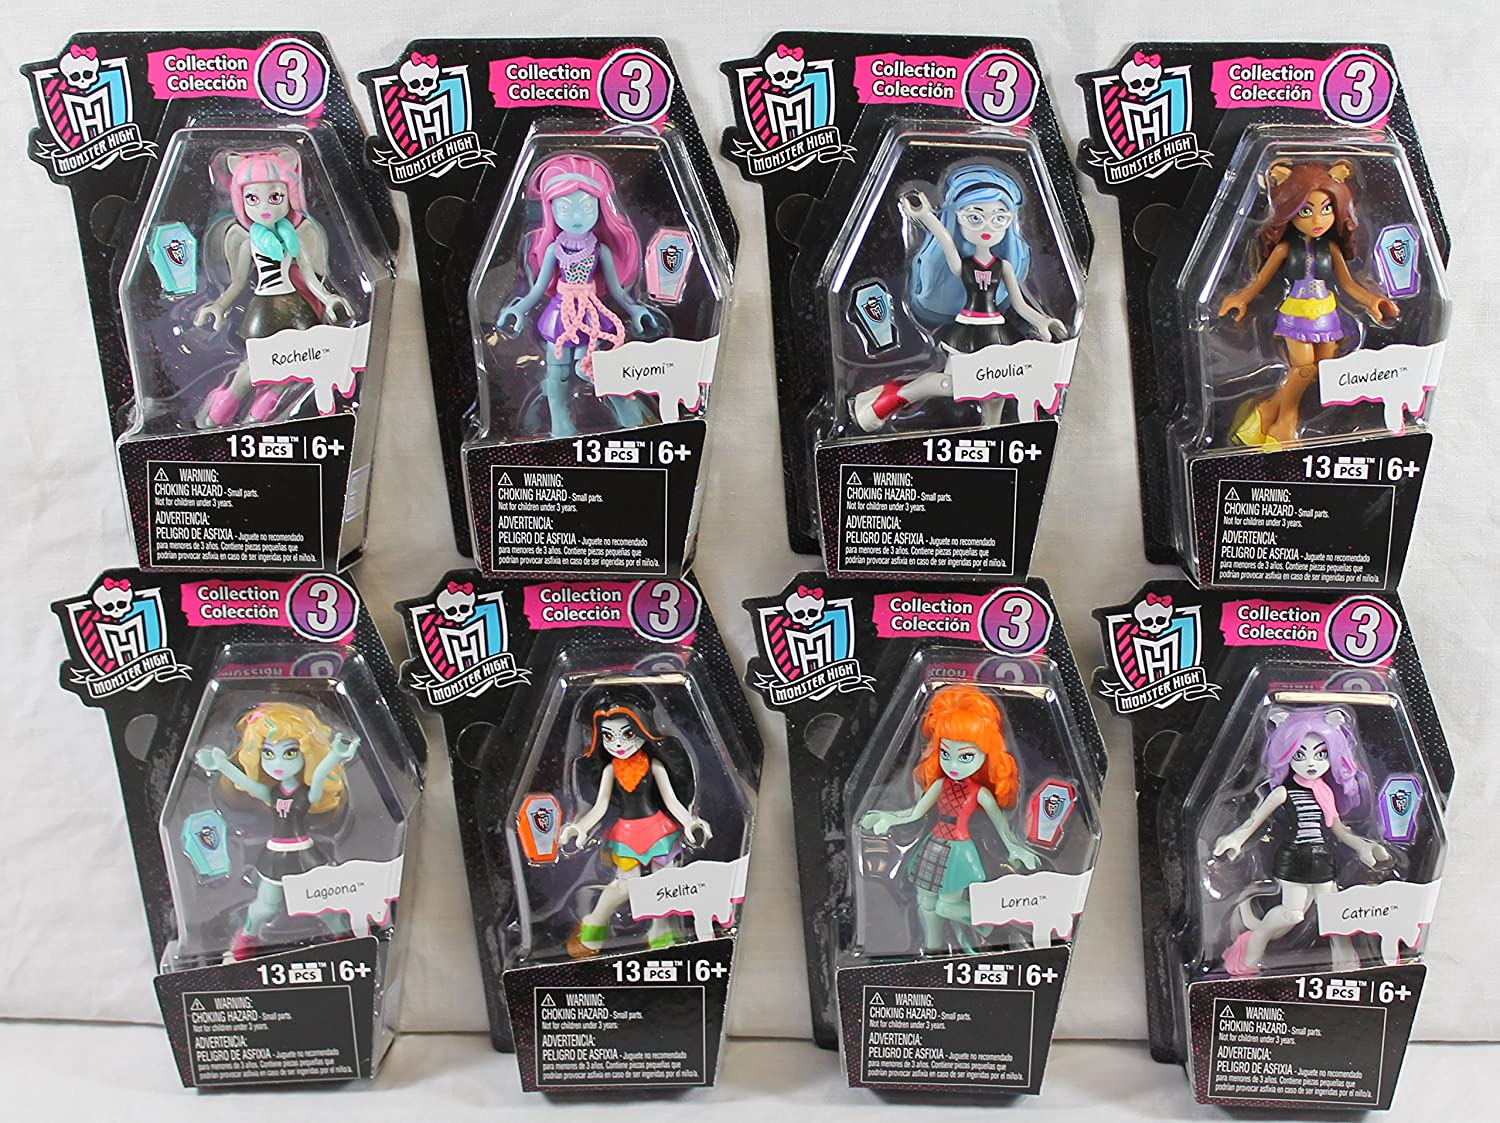 Amazon.com: Toy-Mh Ghouls Skullection Size Ea Monster High Ghouls Skullection Figures: Toys & Games